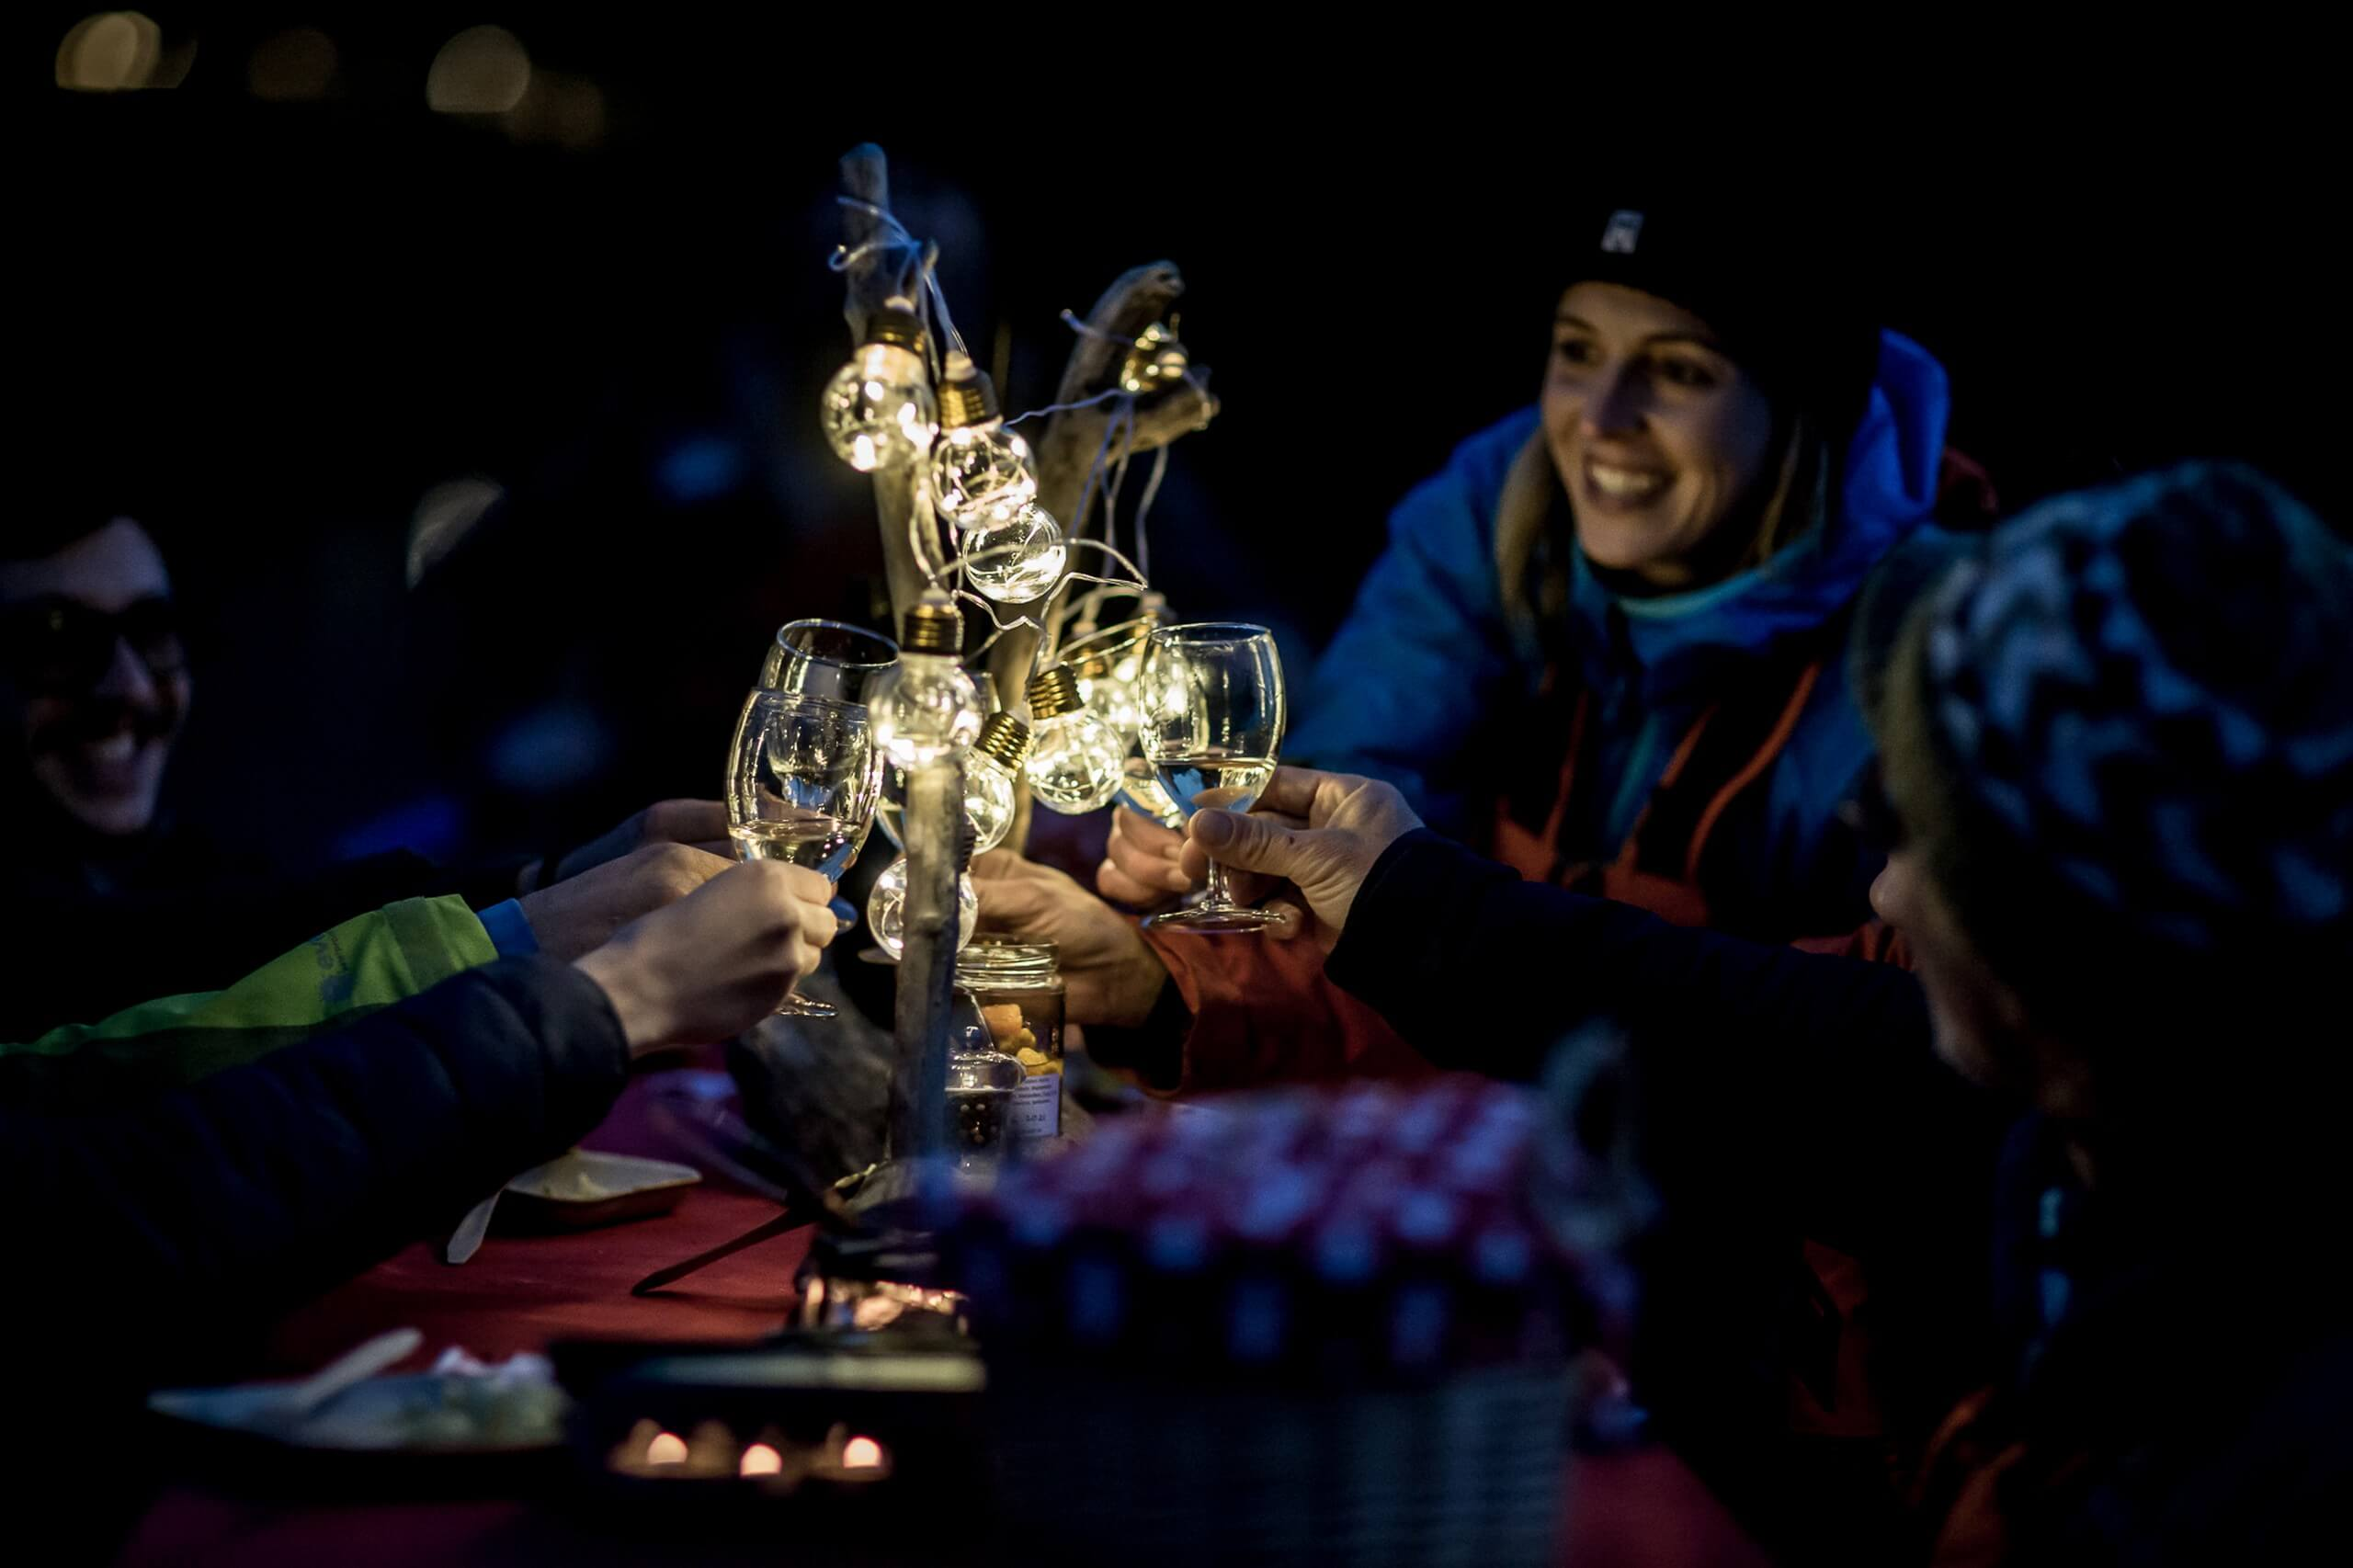 raclette-rafting-outdoor-interlaken-chillipictures-nacht.jpg